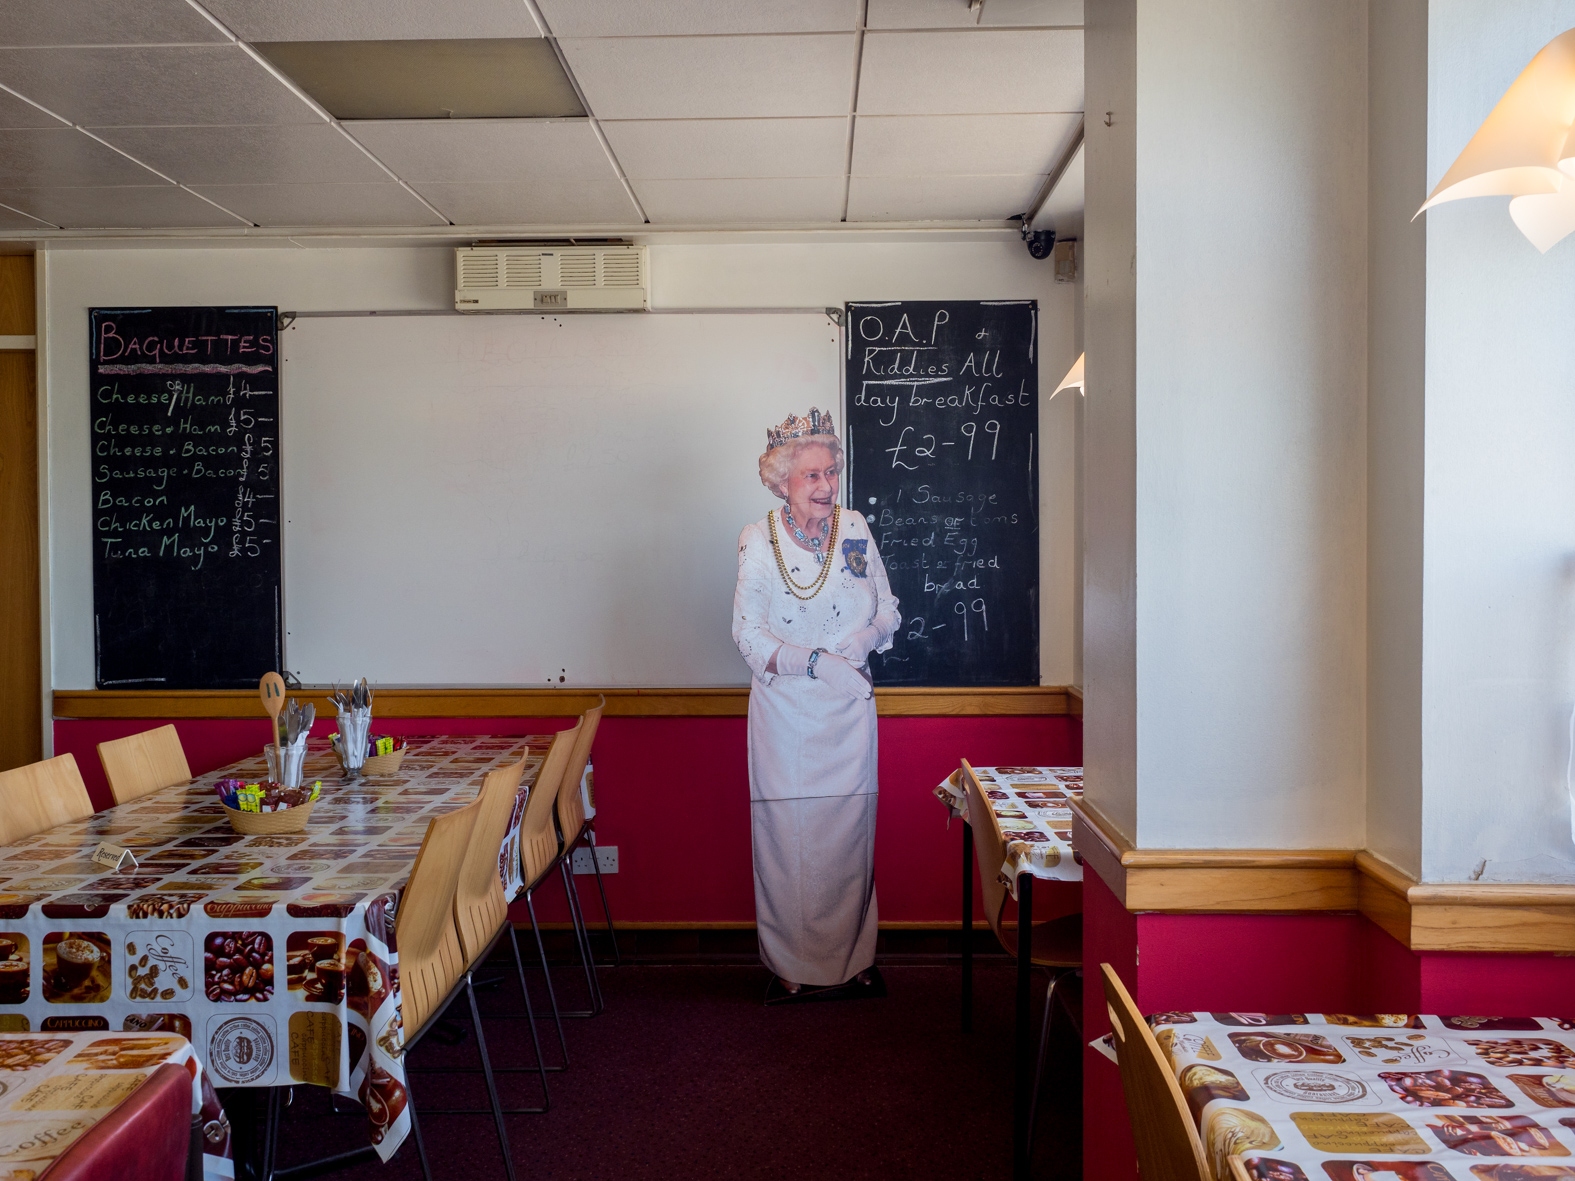 Cutomers at Flo's Cafe can get a photo taken with a cut out of the Queen. Blyth, Nottinghamshire.